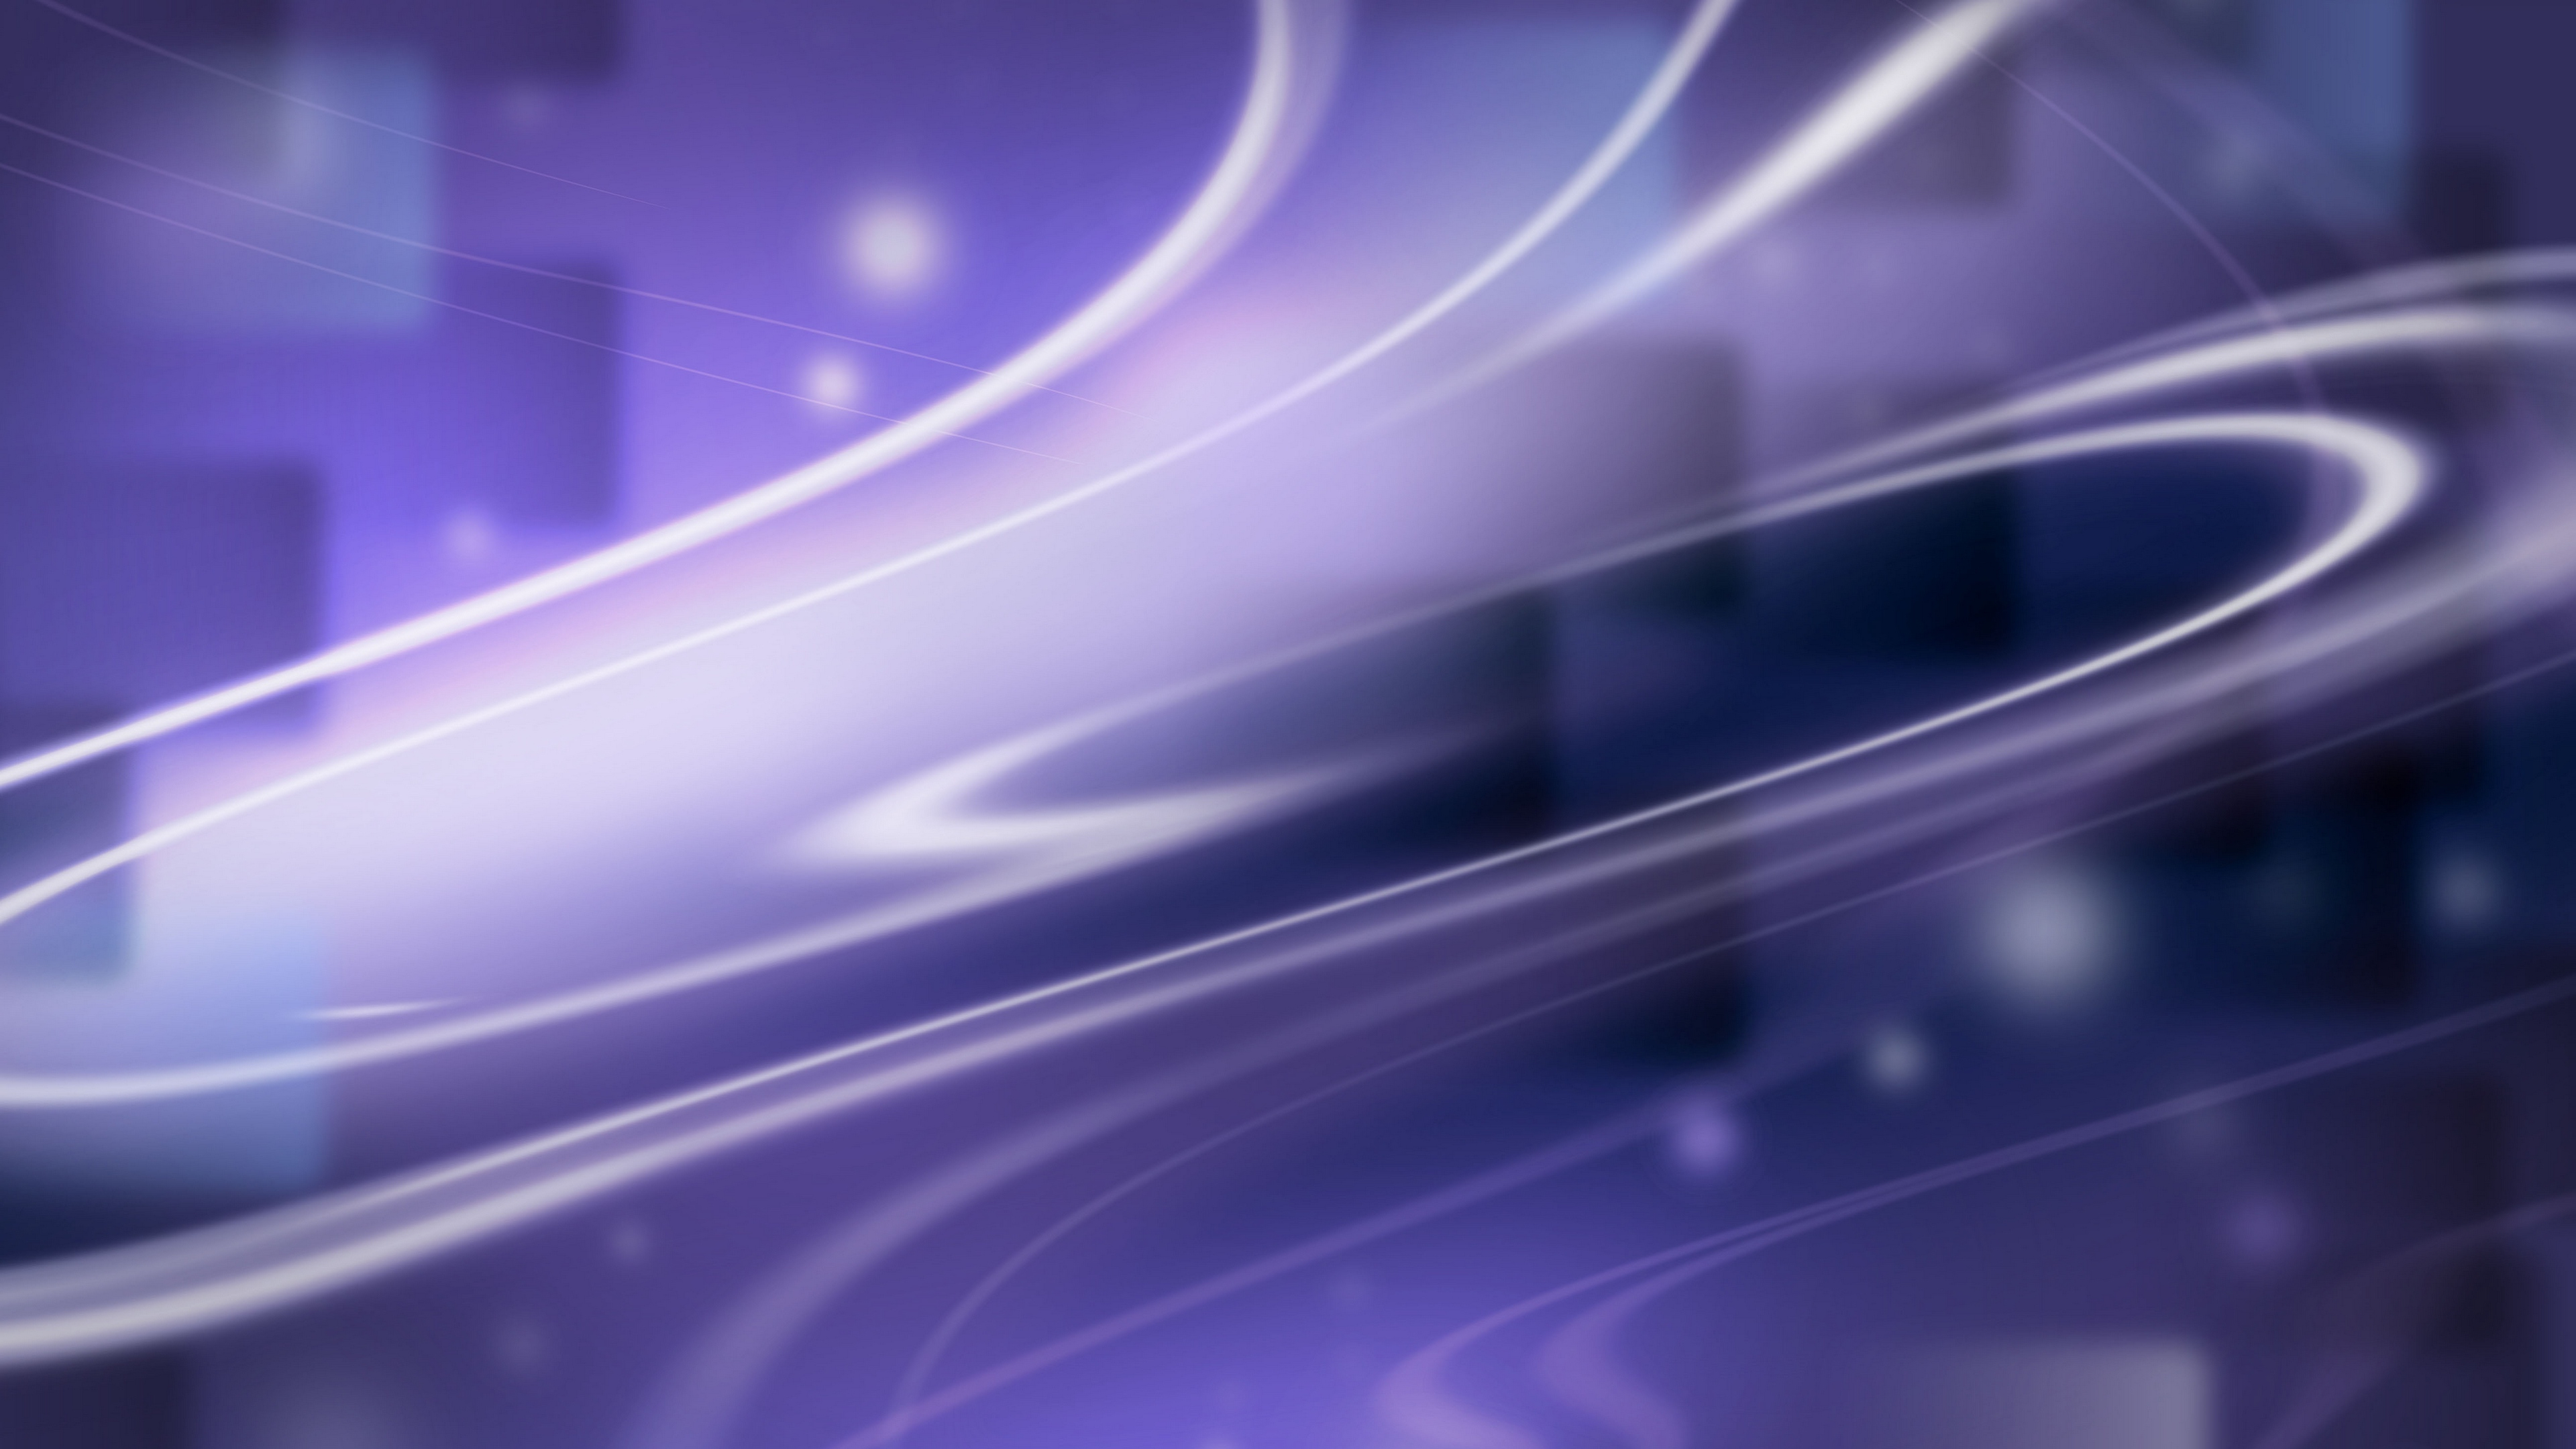 abstract purple white lines 4k 1539369345 - abstract, purple, white, lines 4k - white, Purple, abstract